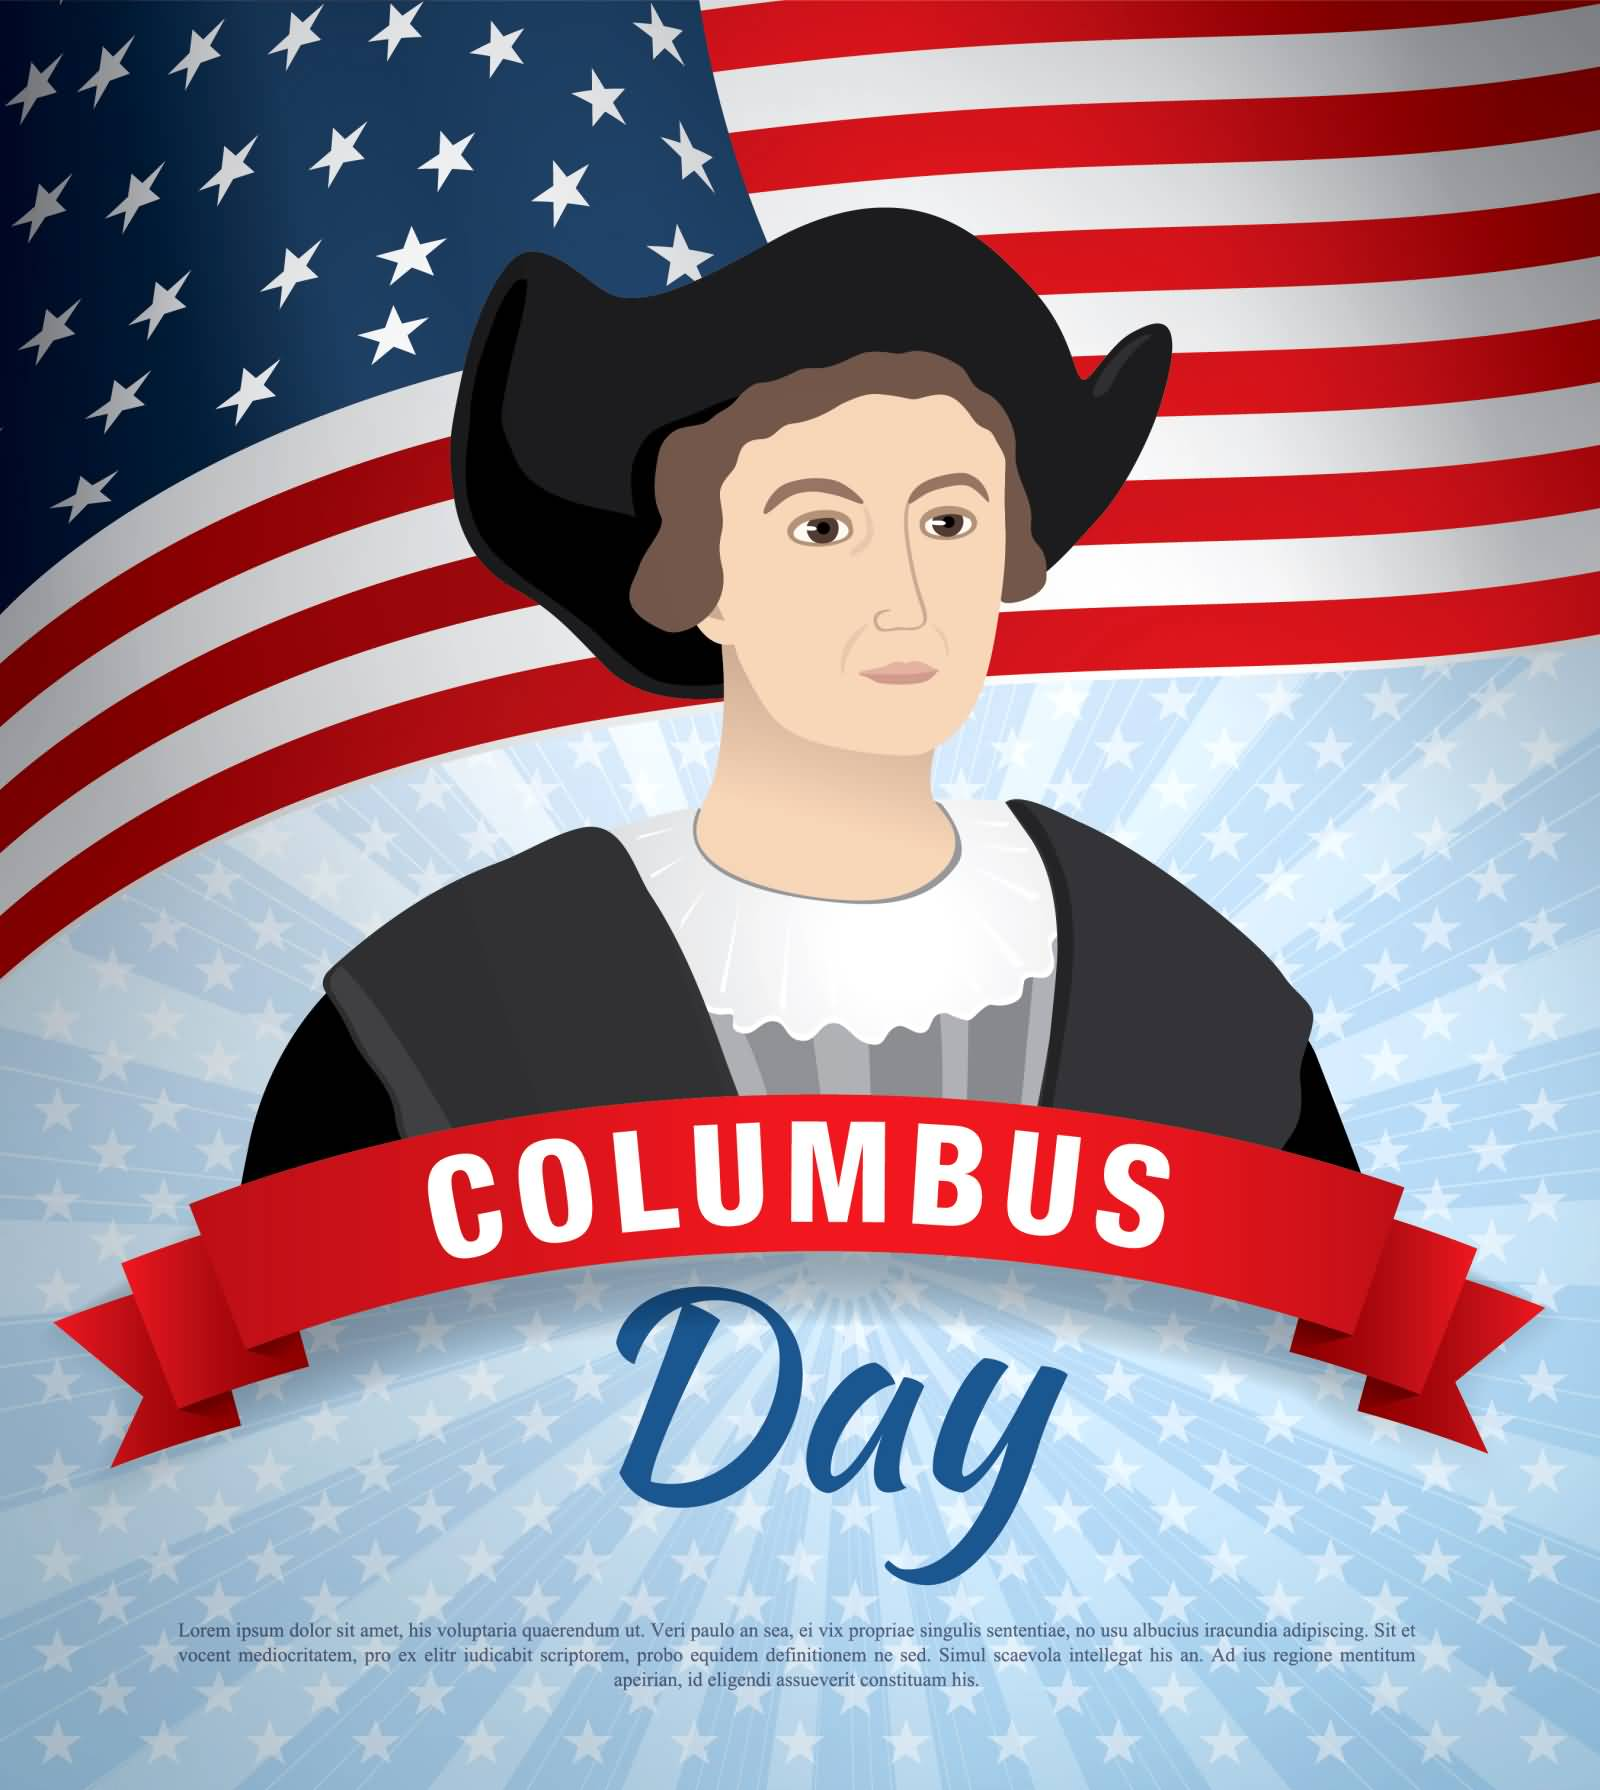 Columbus Day Christopher Columbus Clipart Image.